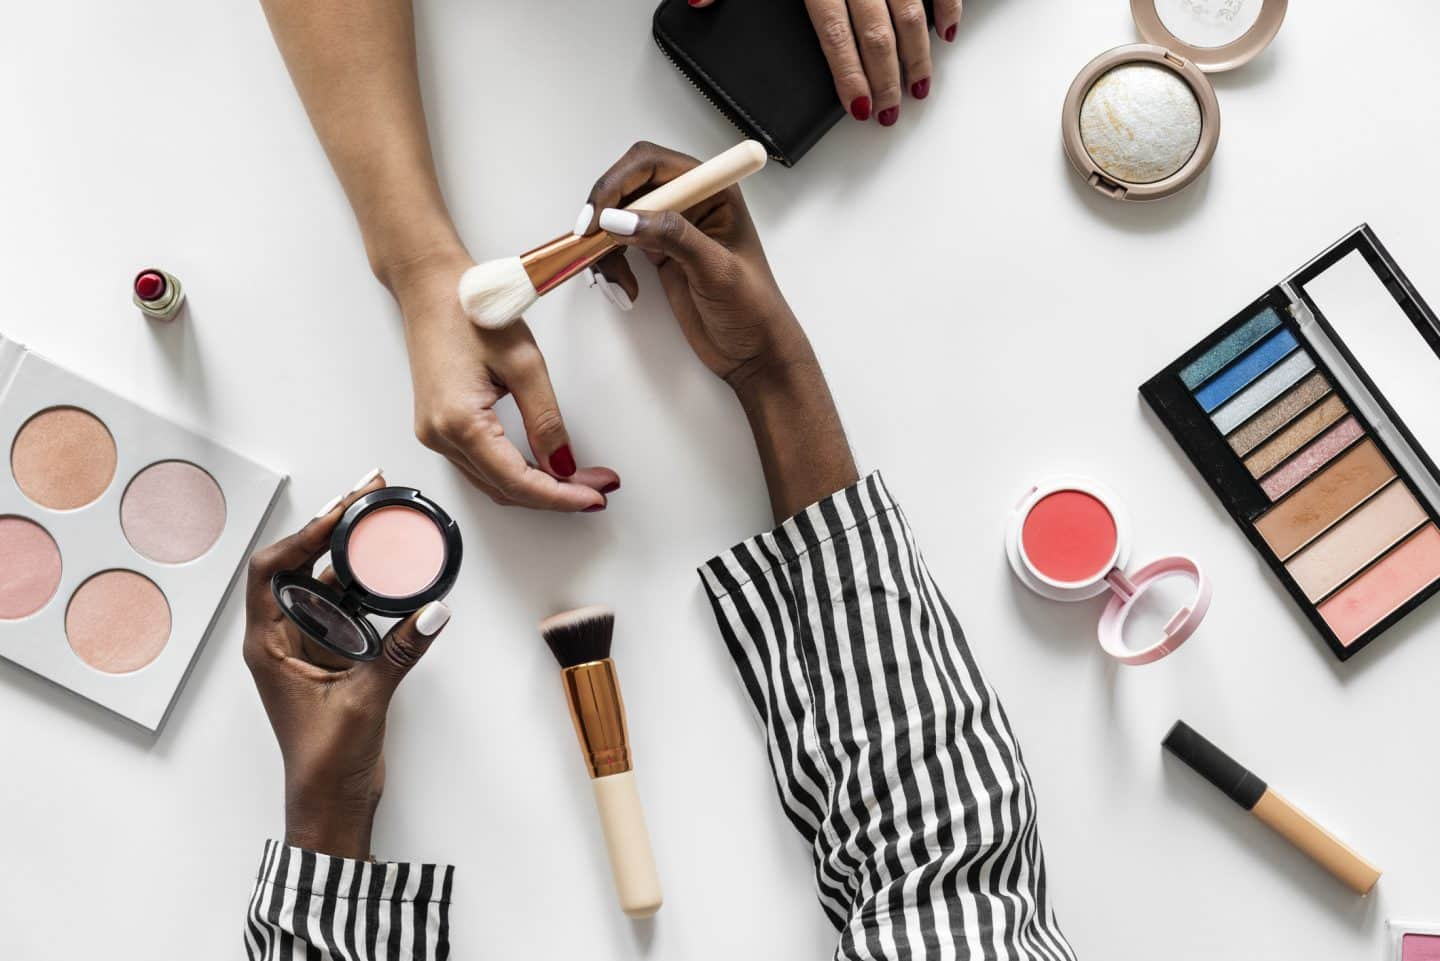 Inside the Perfect Personalization of the Ulta App